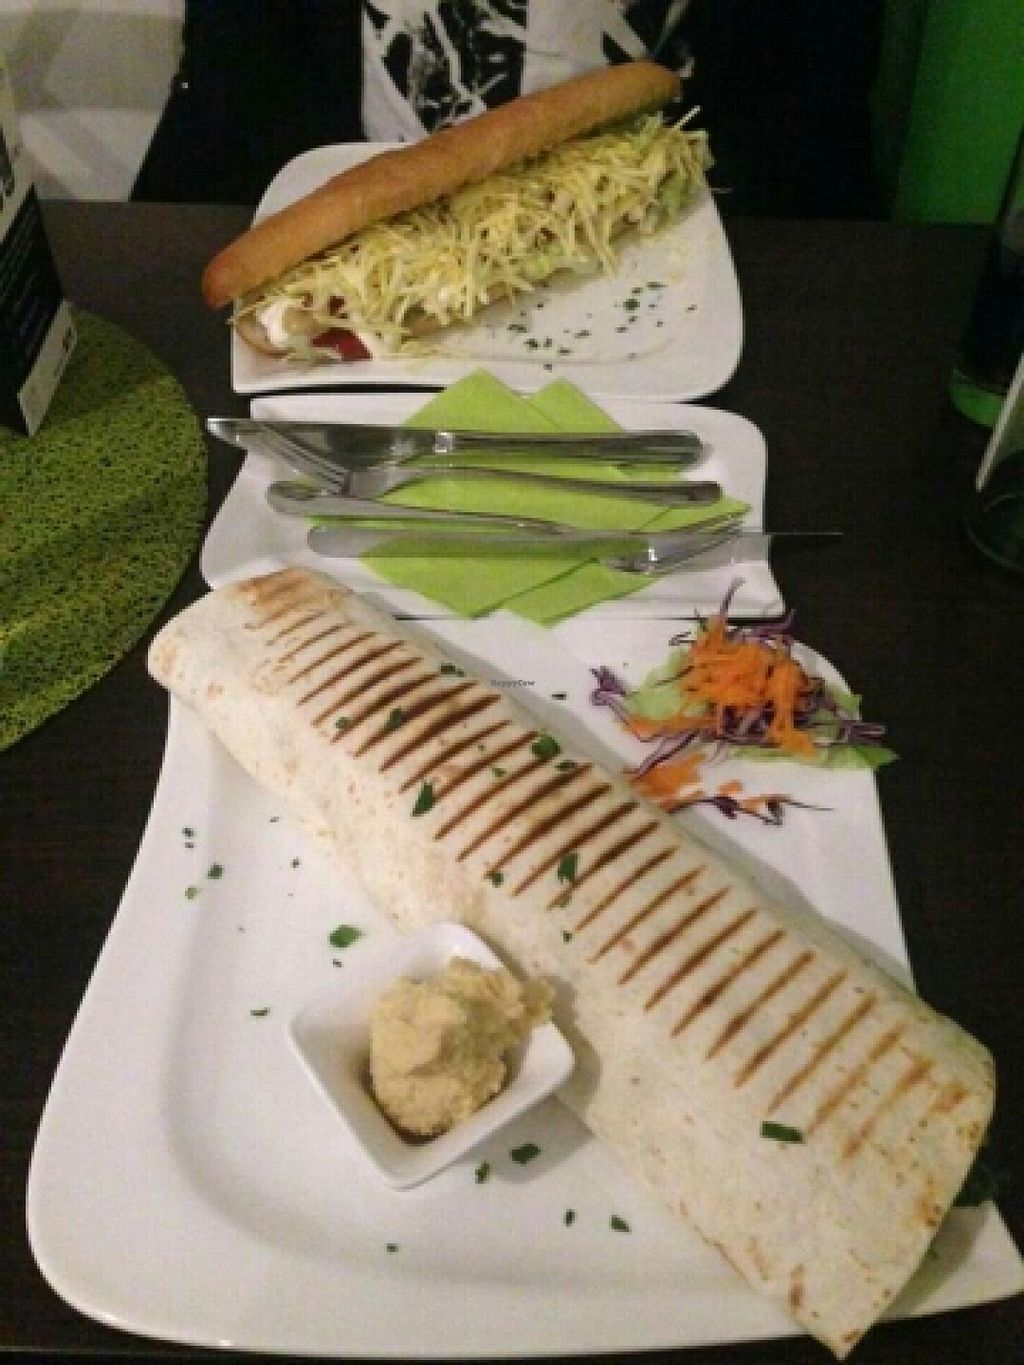 "Photo of CLOSED: Cafe Grun  by <a href=""/members/profile/Sonni"">Sonni</a> <br/>Cheese Hot Dog and Tofu Hummus Wrap <br/> March 18, 2016  - <a href='/contact/abuse/image/67608/140378'>Report</a>"